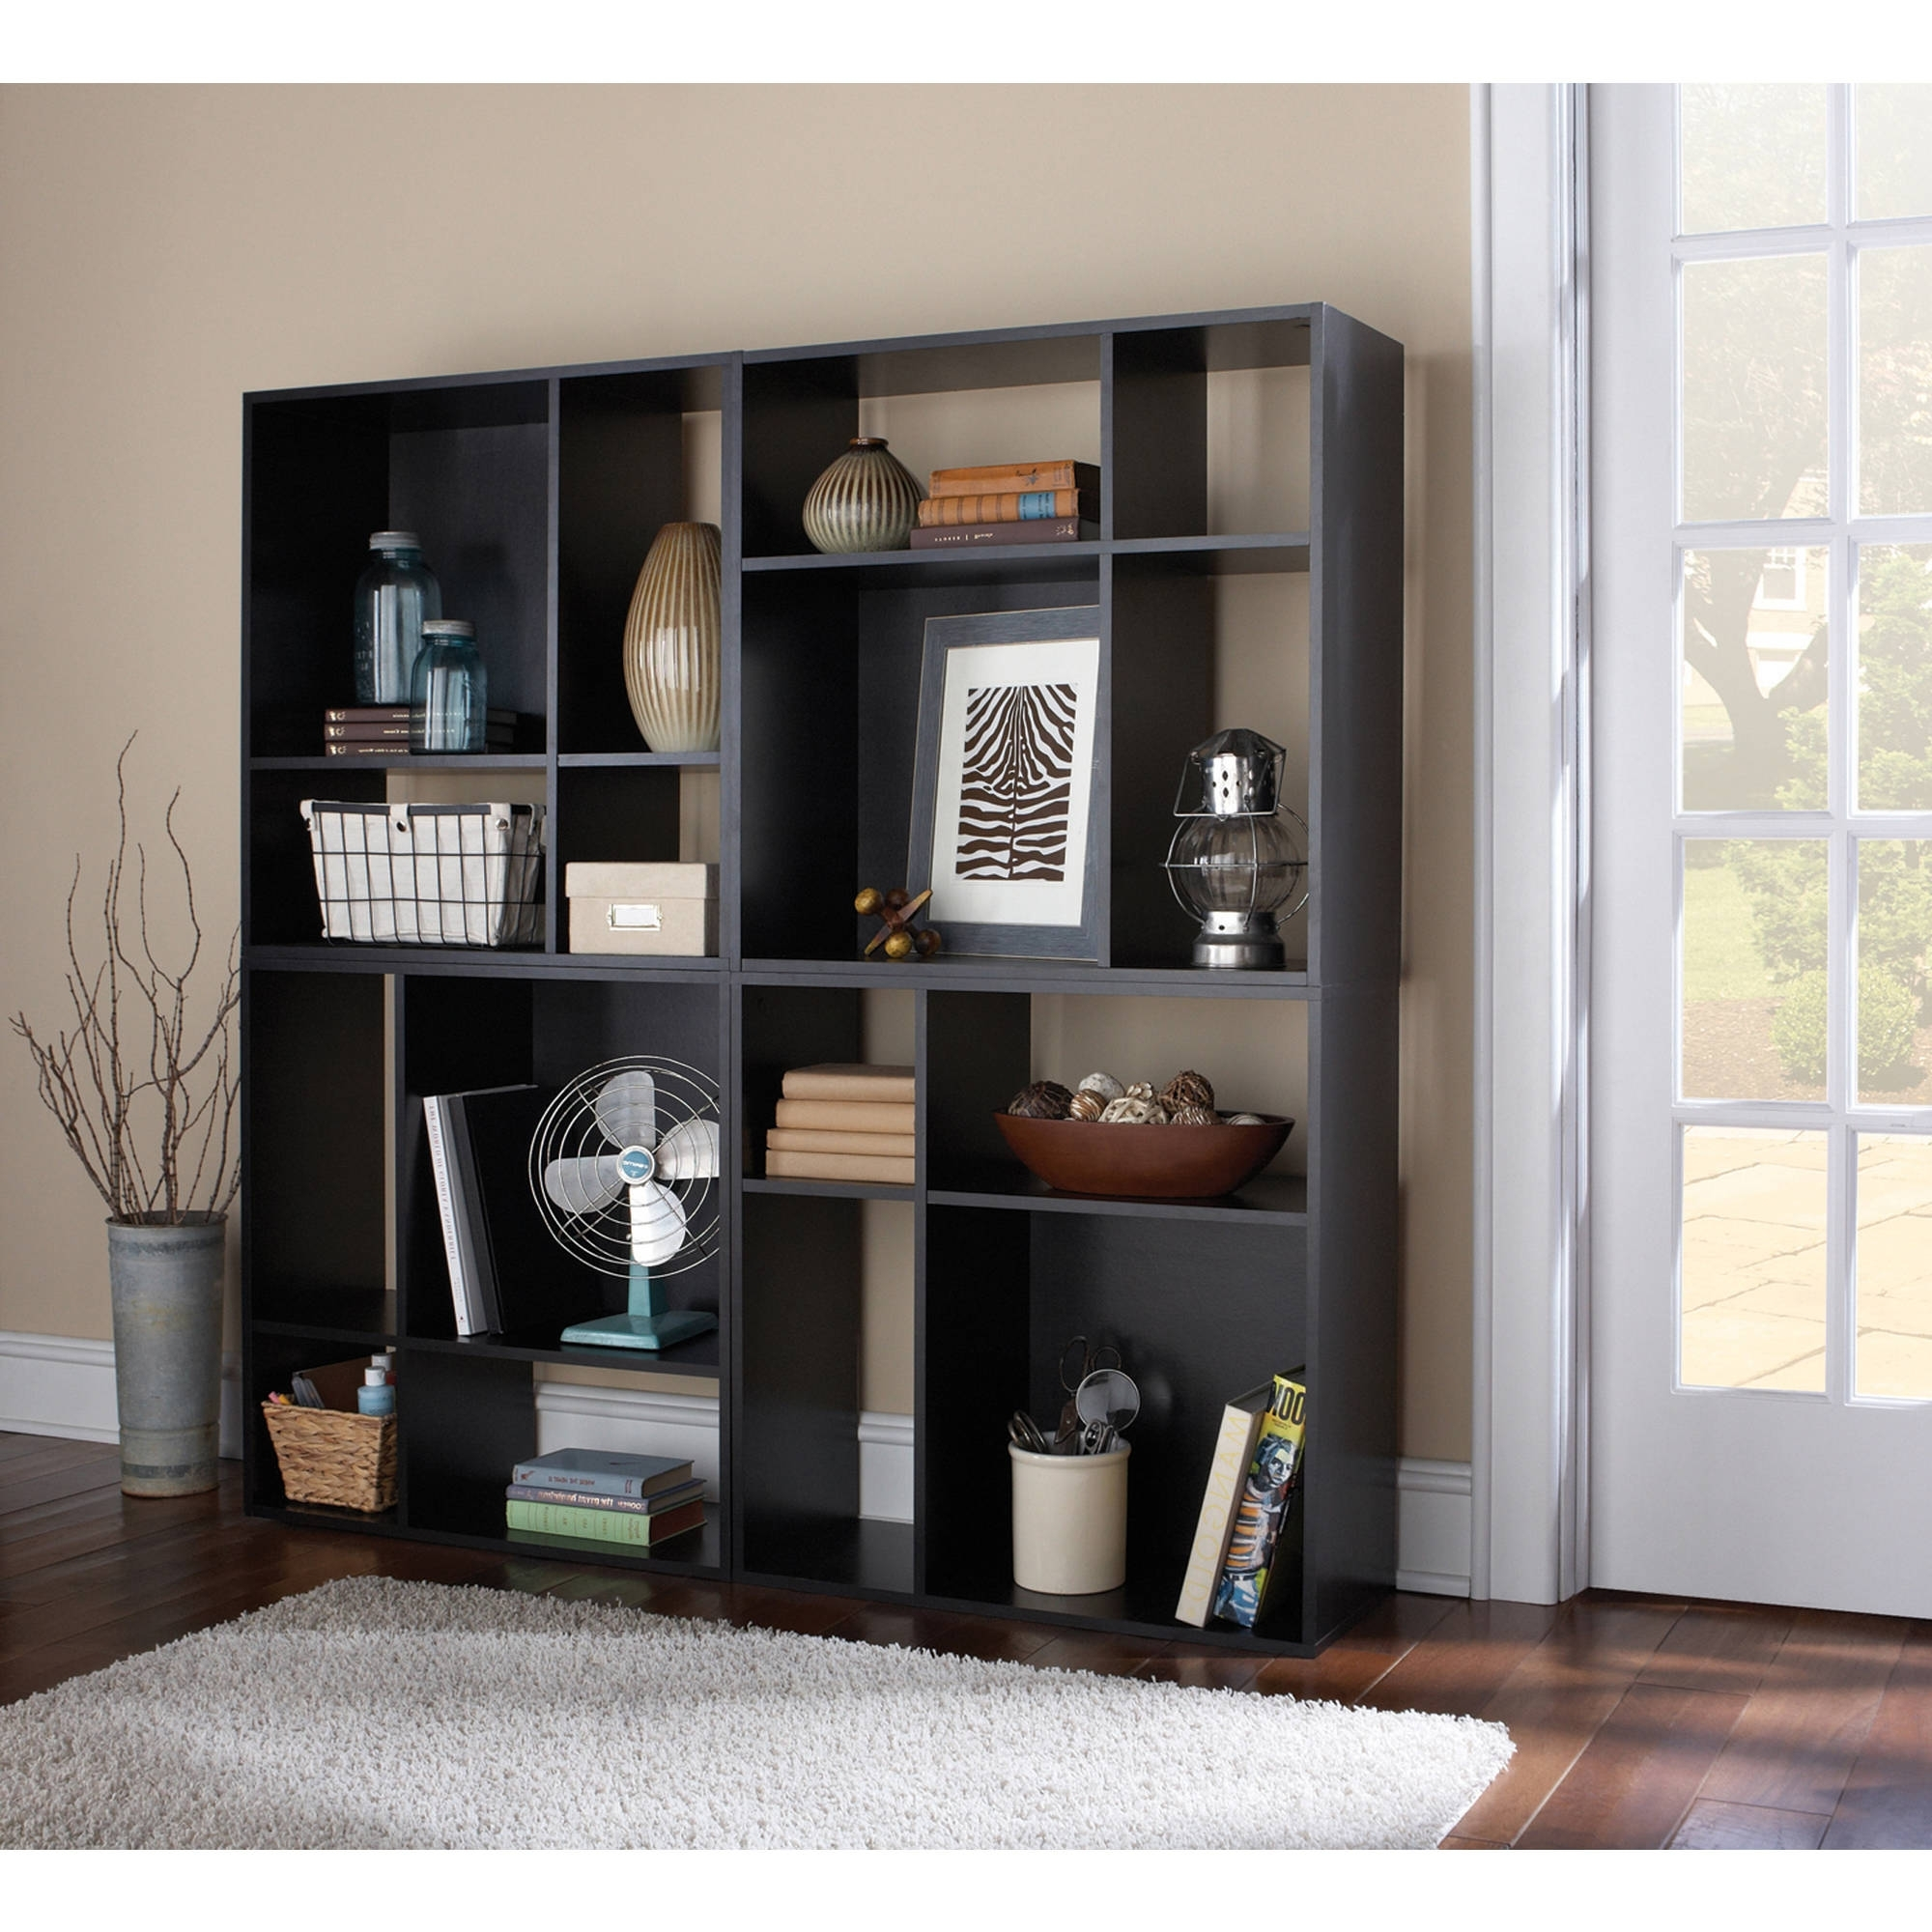 Mainstays 5 Shelf Bookcases Within Popular Home Furniture Storage Book Shelfs Shelving And Bookcases 4 Cube (View 8 of 15)